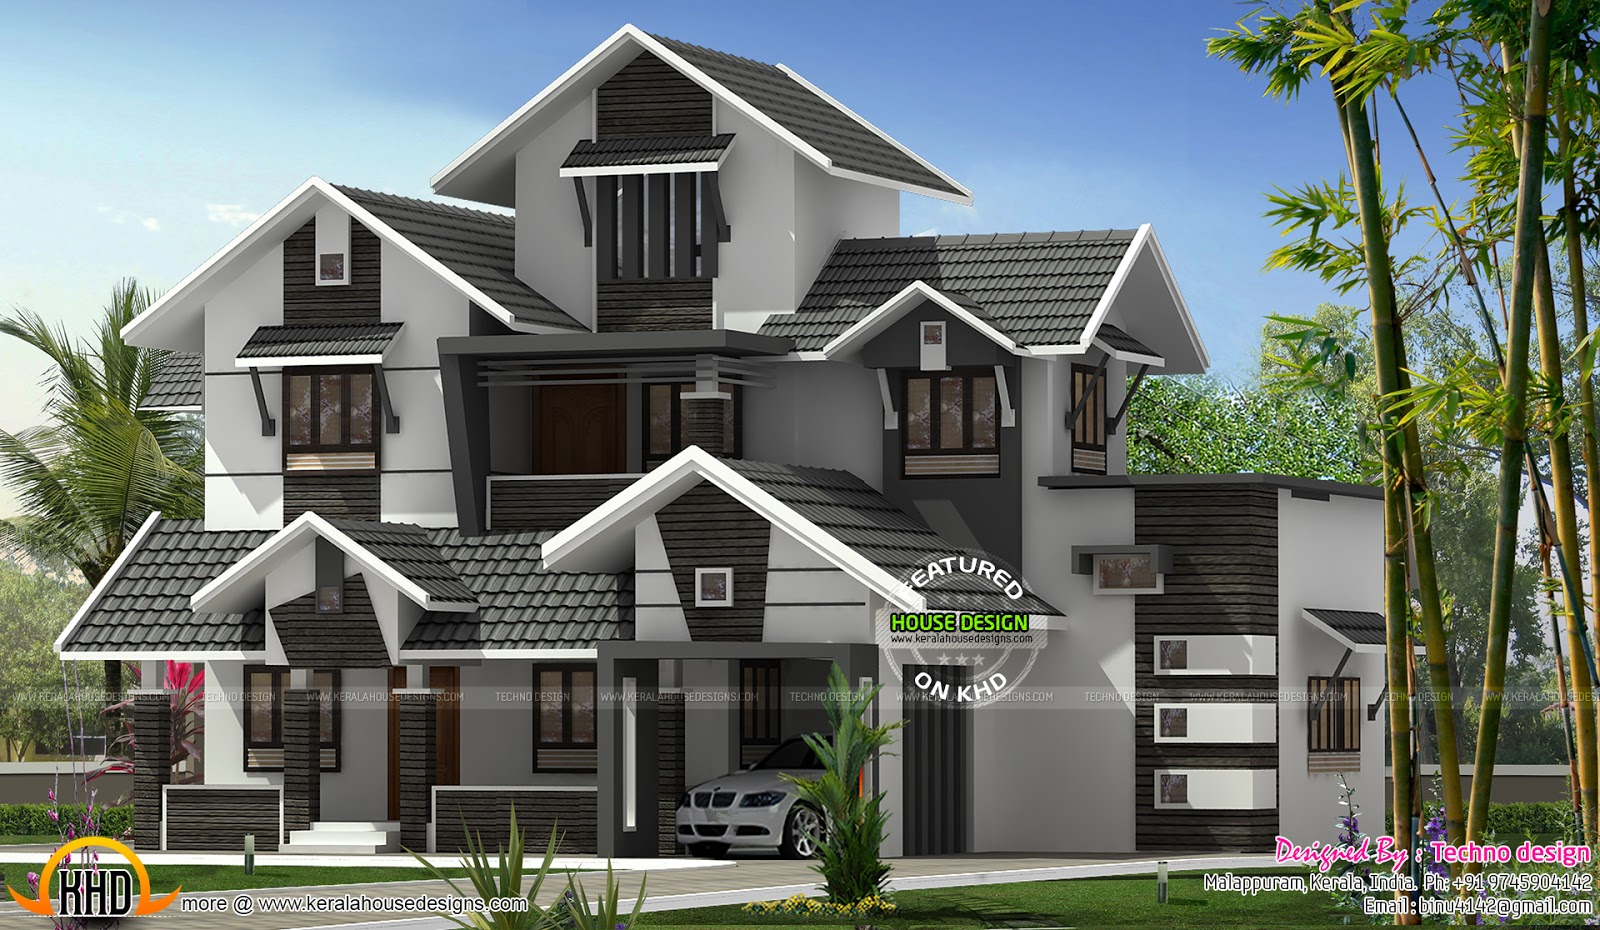 Modern kerala home design kerala home design and floor plans for Contemporary style homes in kerala